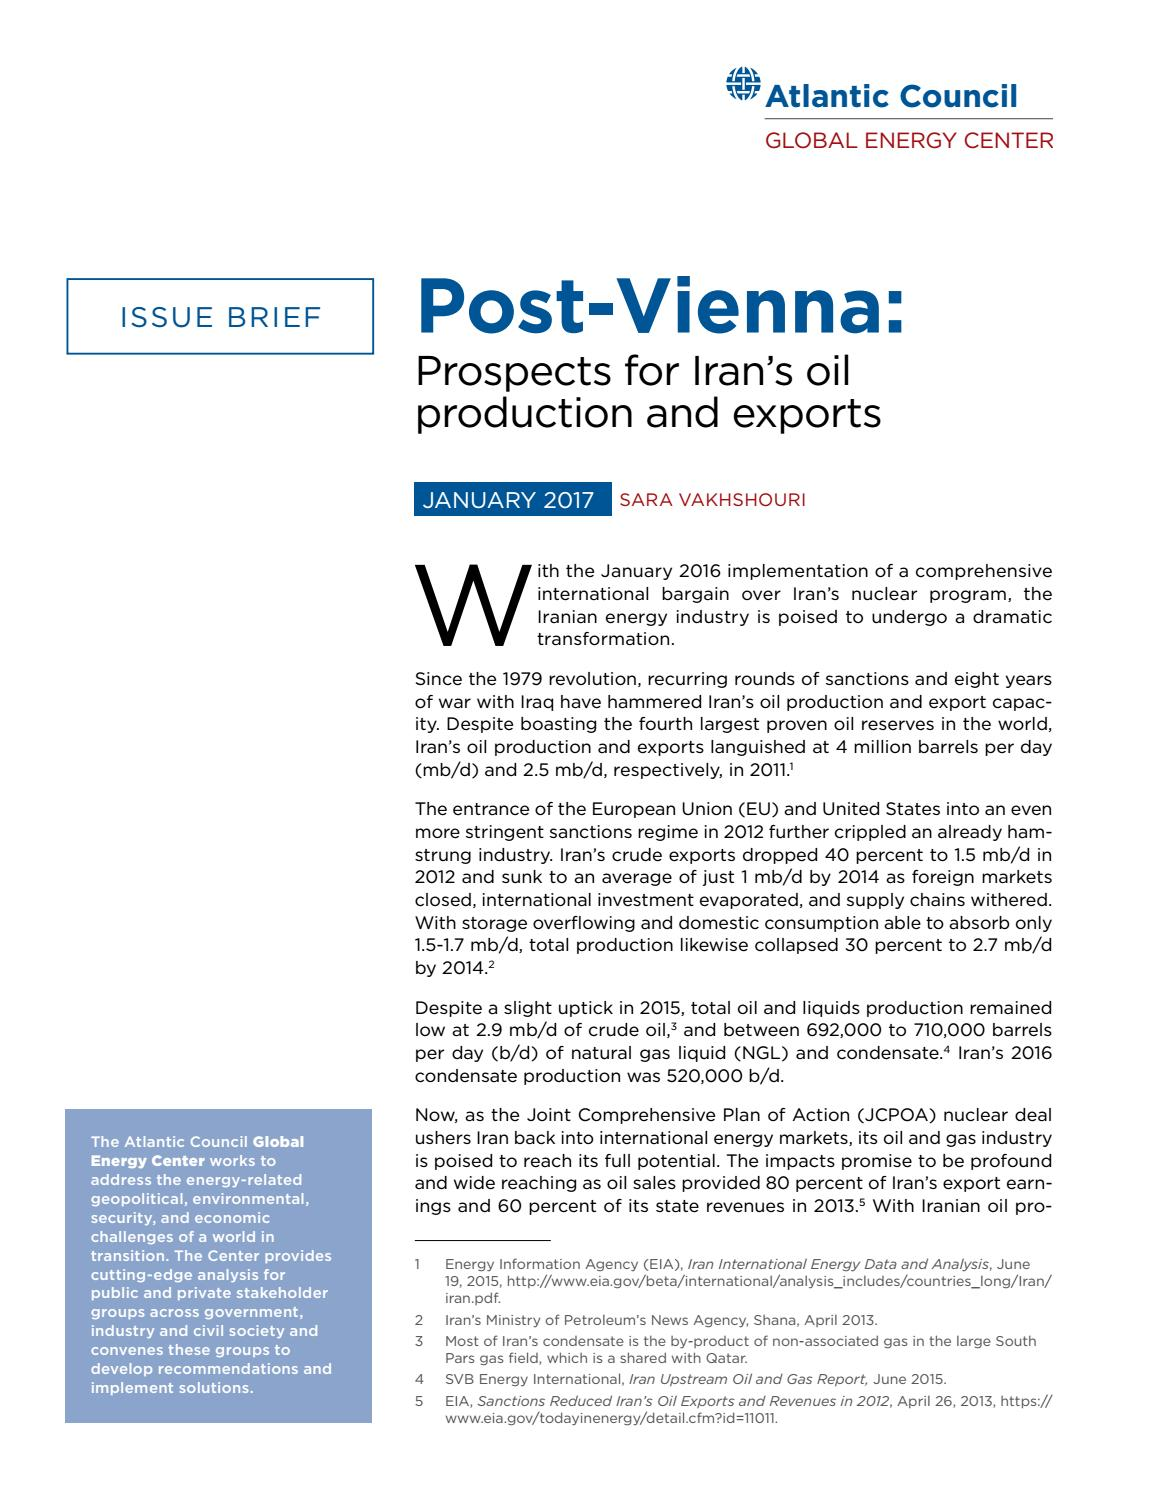 Post-Vienna: Prospects for Iran's Oil Production and Exports